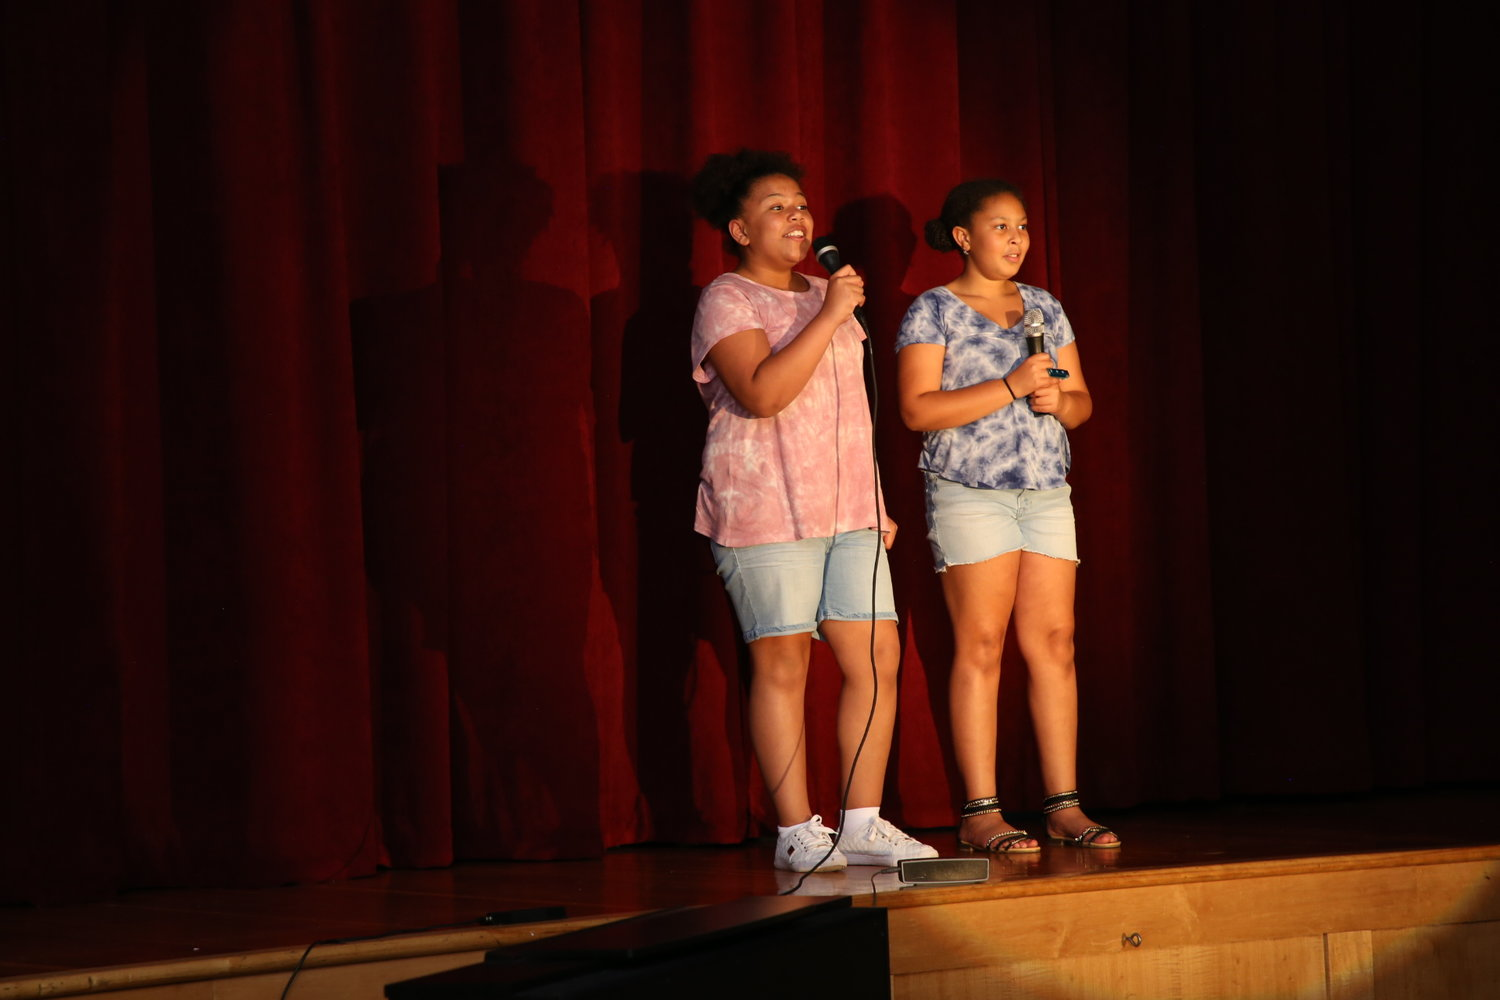 "Camryn Clark & Janai Haden- Sang ""Talking to the Moon"" by Bruno Mars"